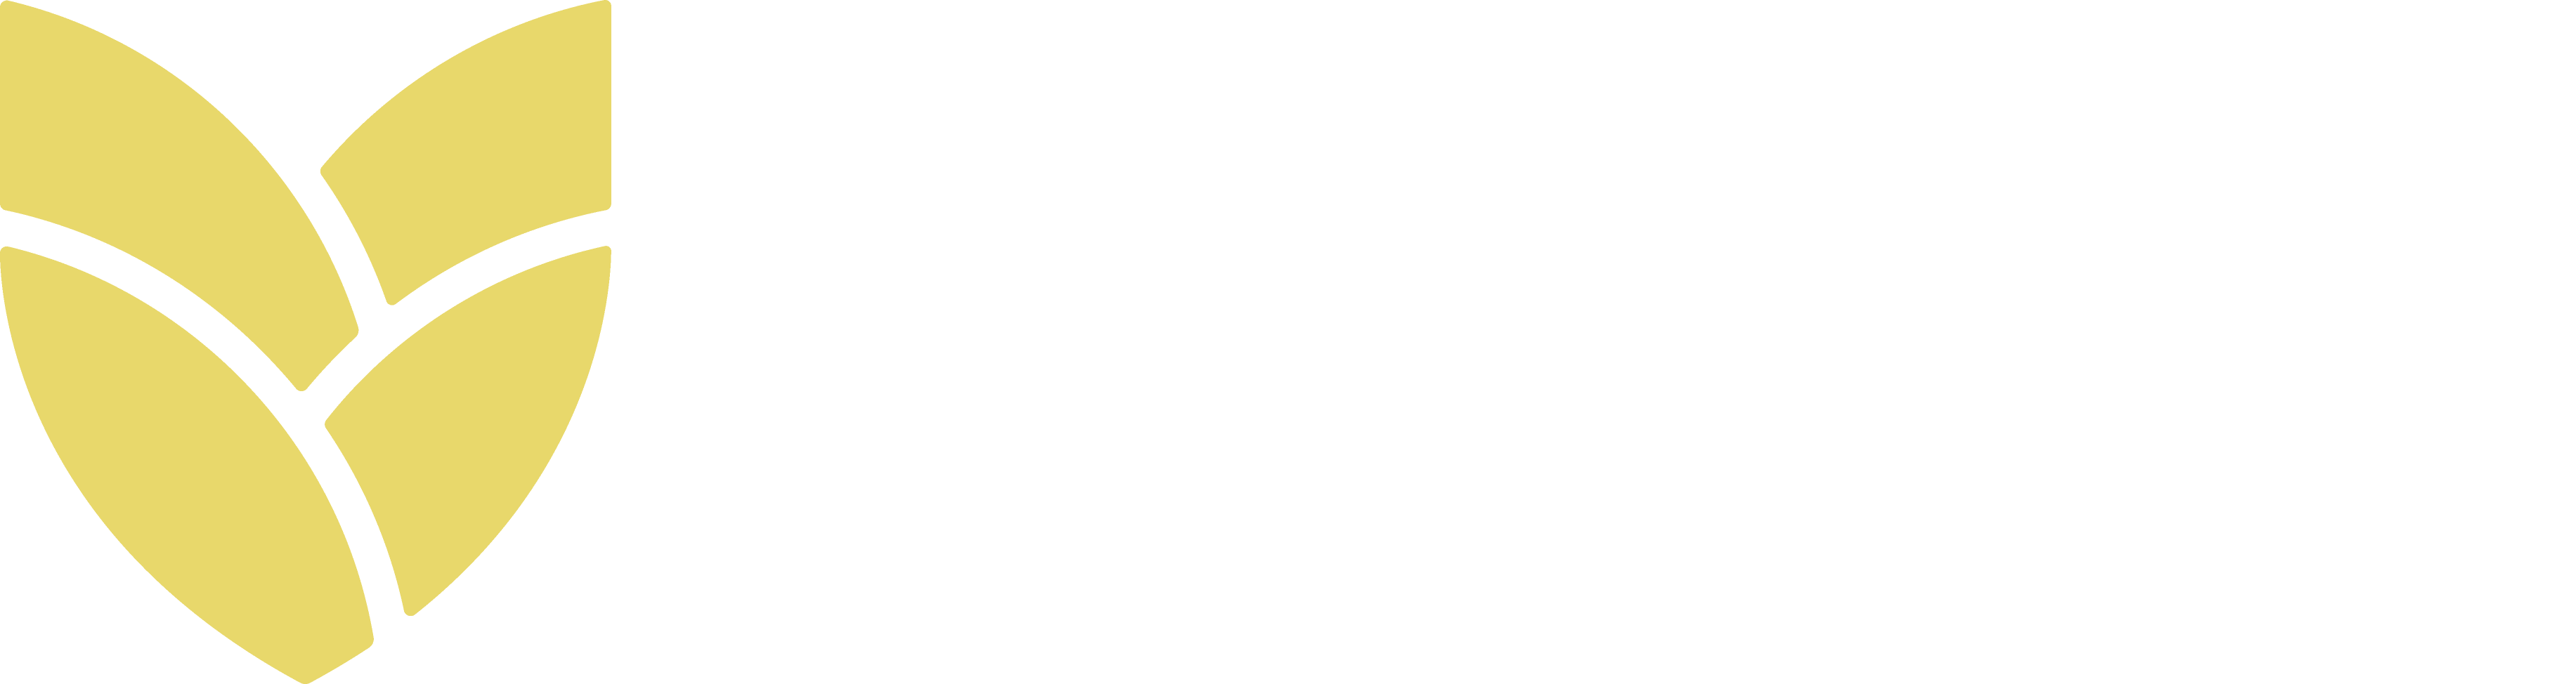 Pullman-Marketing-Inline-WHITE